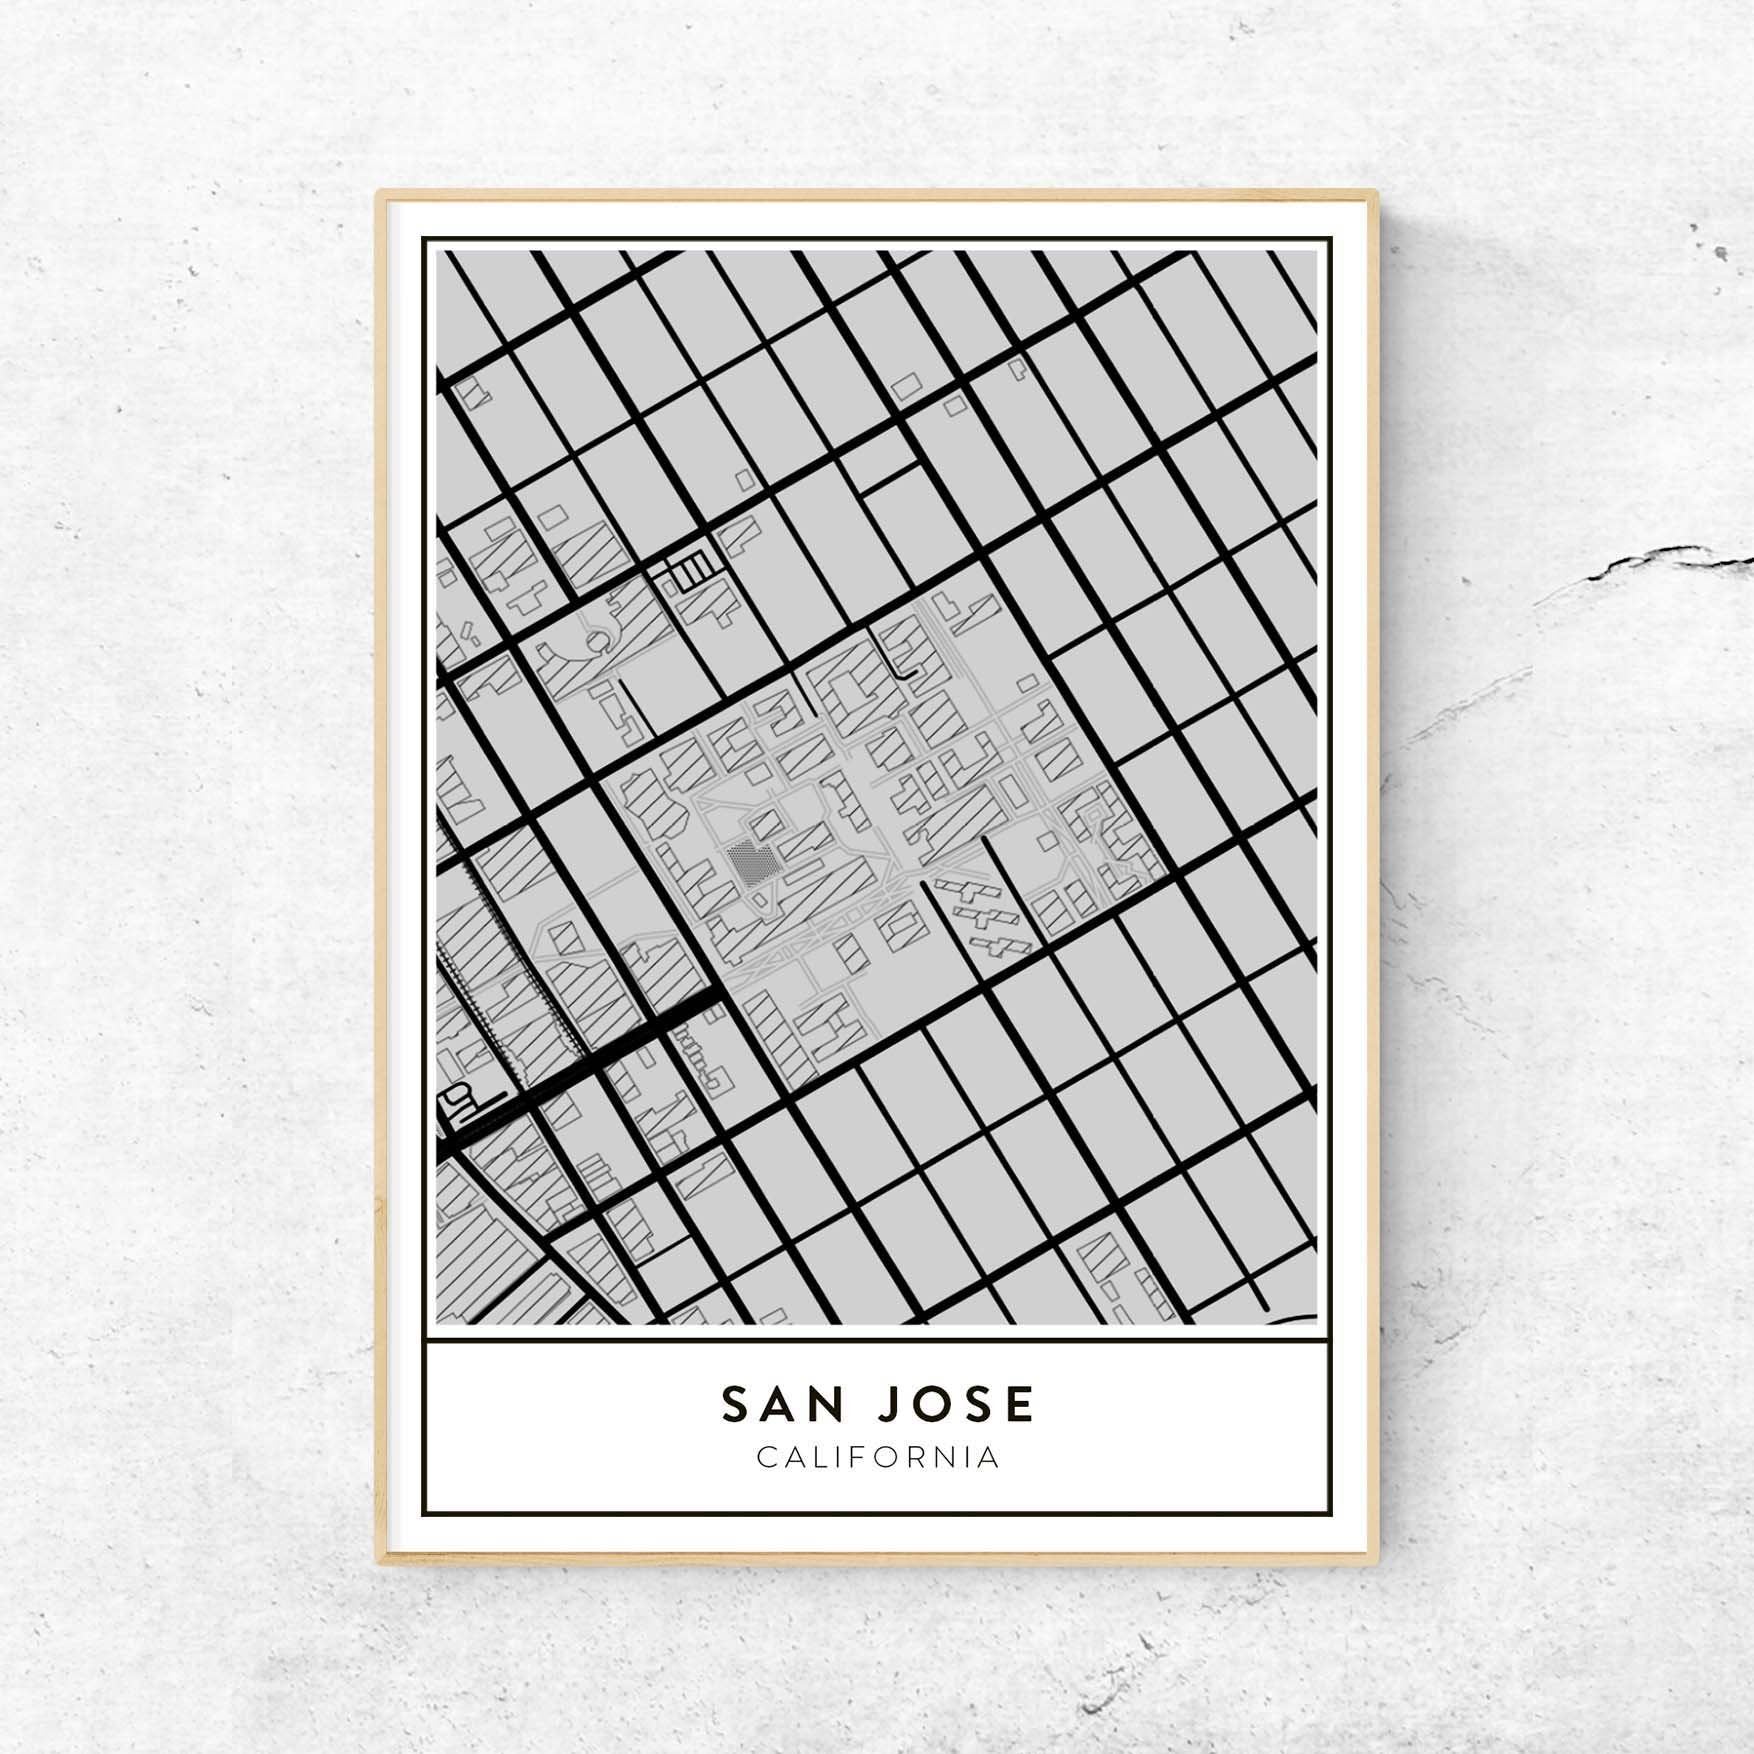 San Jose Campus Map.Golden Gate Design Co Custom Map Art Prints Of Your Favorite City